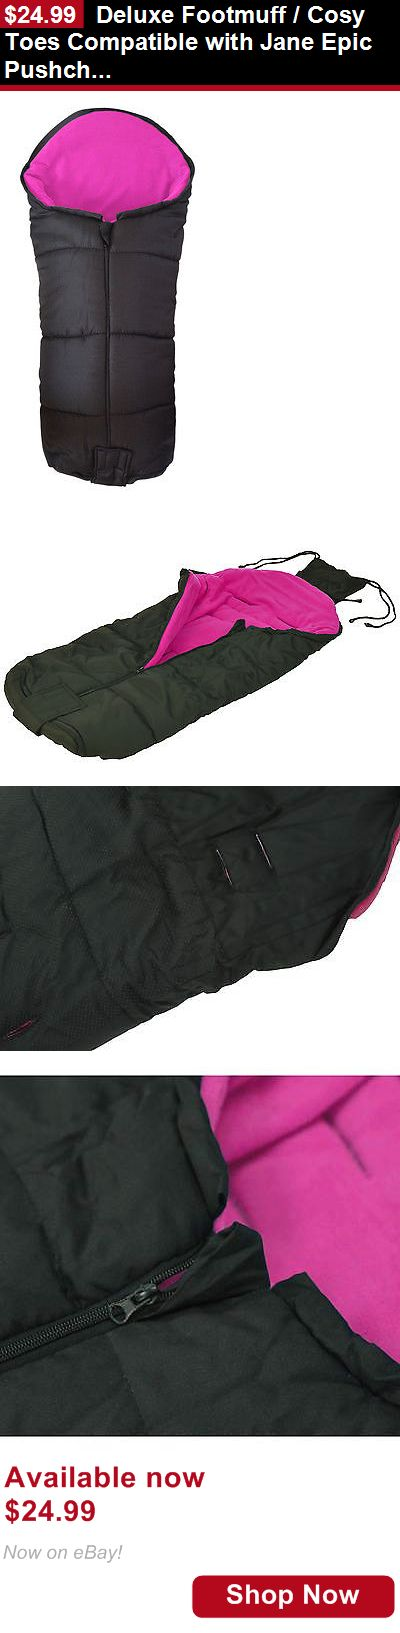 Footmuffs: Deluxe Footmuff / Cosy Toes Compatible With Jane Epic Pushchair Pink BUY IT NOW ONLY: $24.99